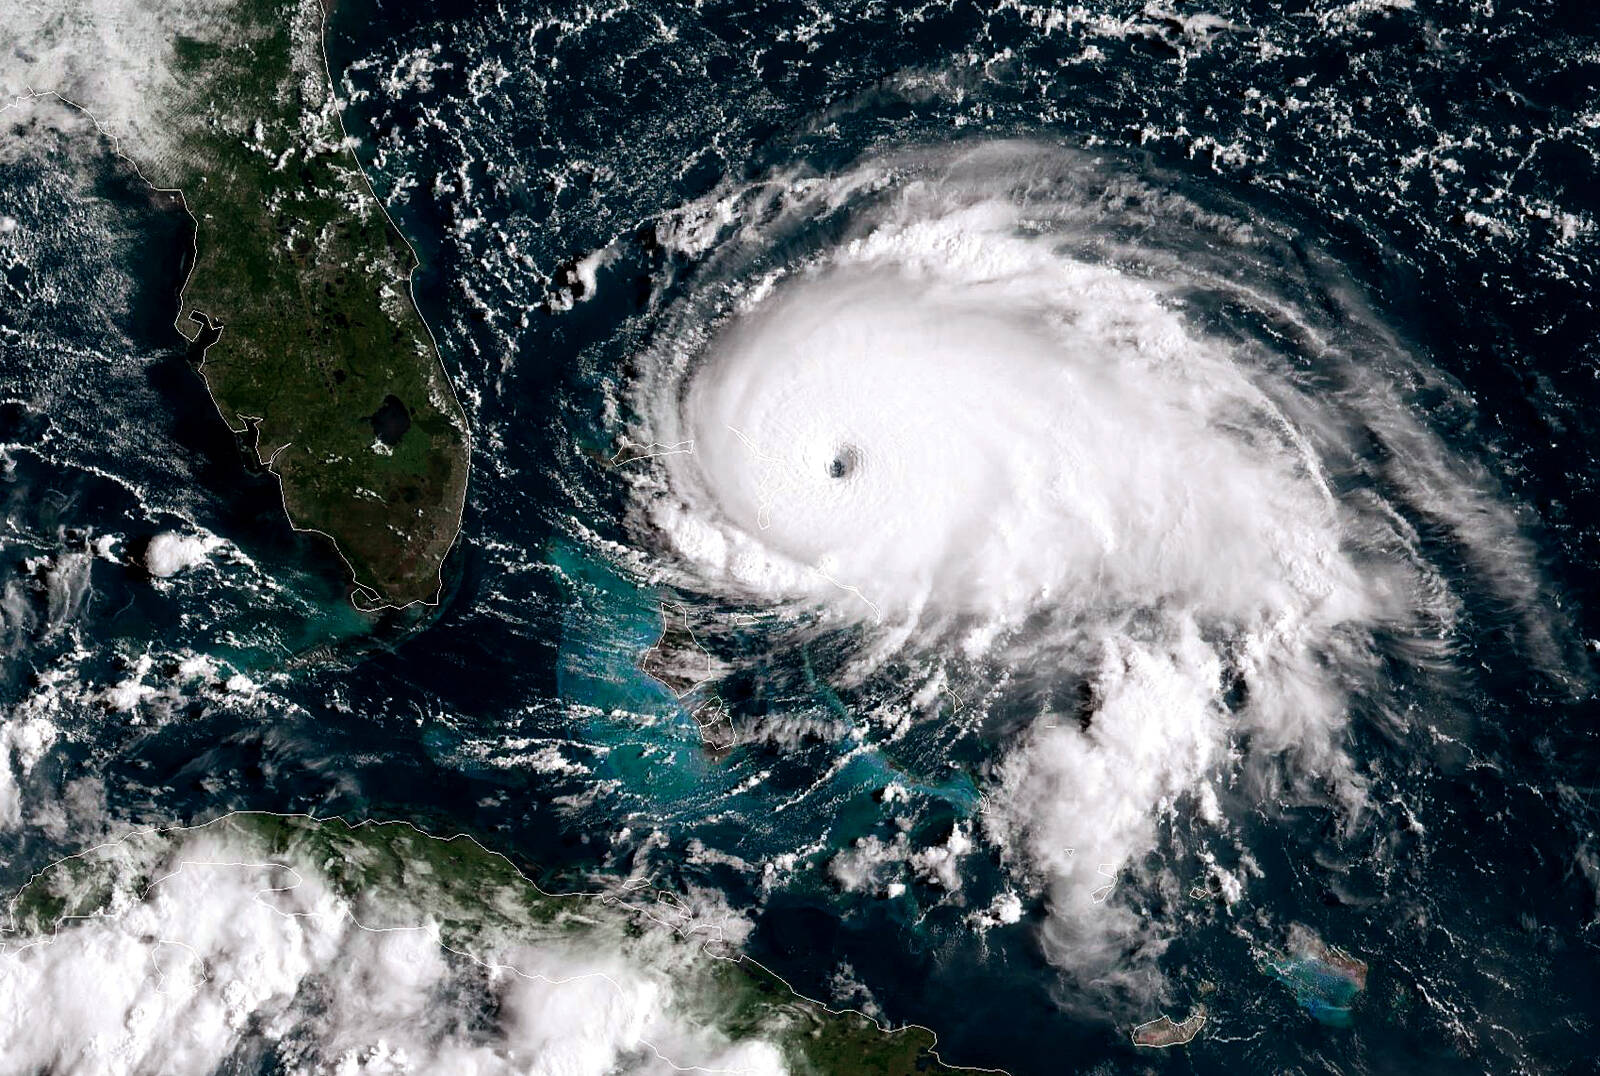 Hurricane Dorian tracks towards the Florida coast on Sept. 1, 2019 in the Atlantic Ocean. Credit: NOAA via Getty Images